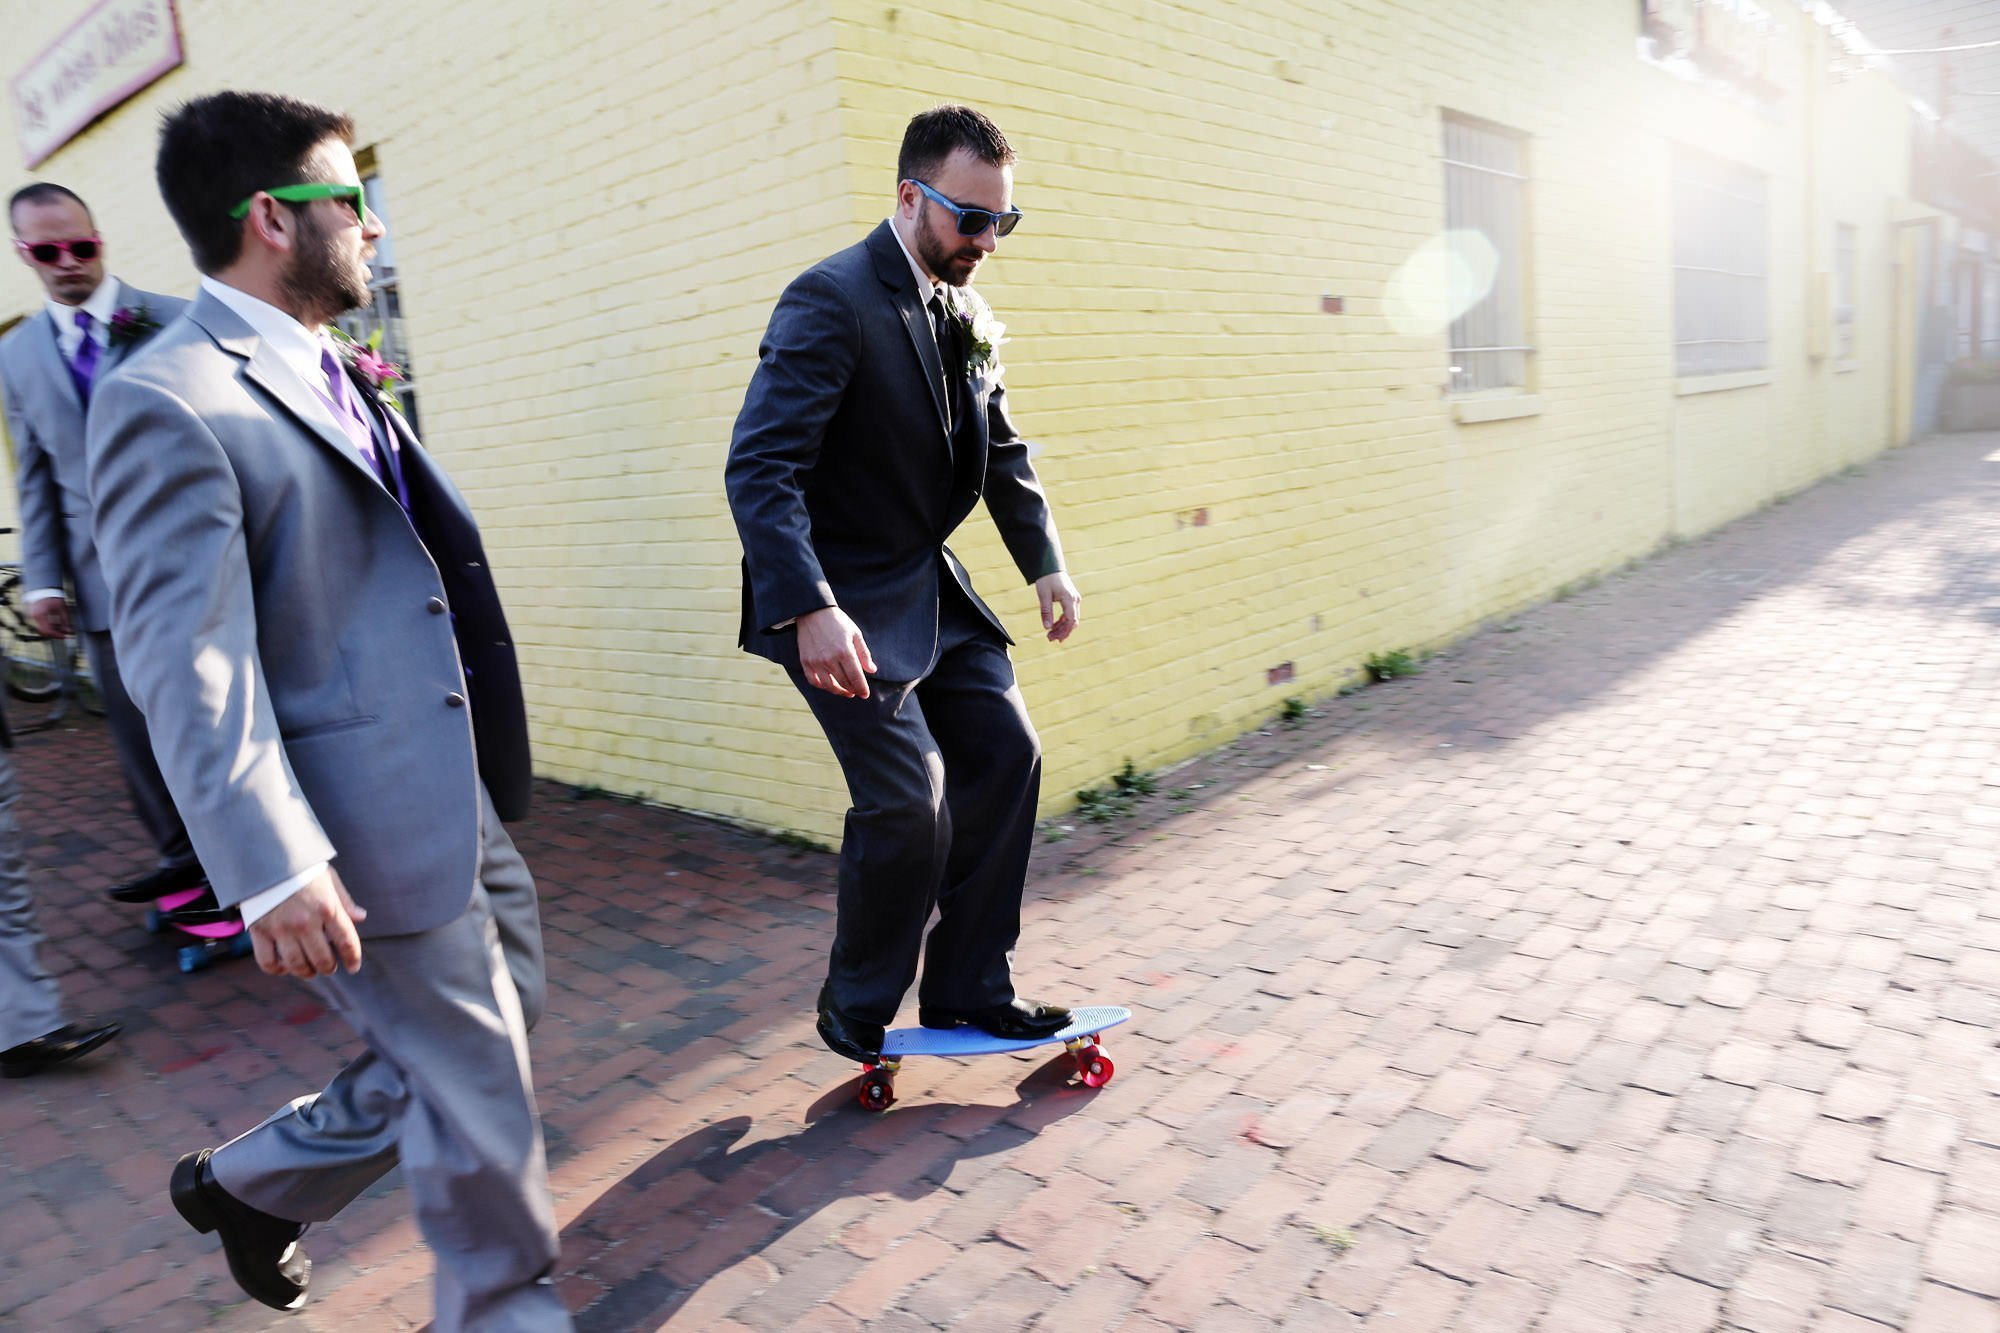 The groom rides his skateboard through Alexandria before his Topedo Factory wedding.